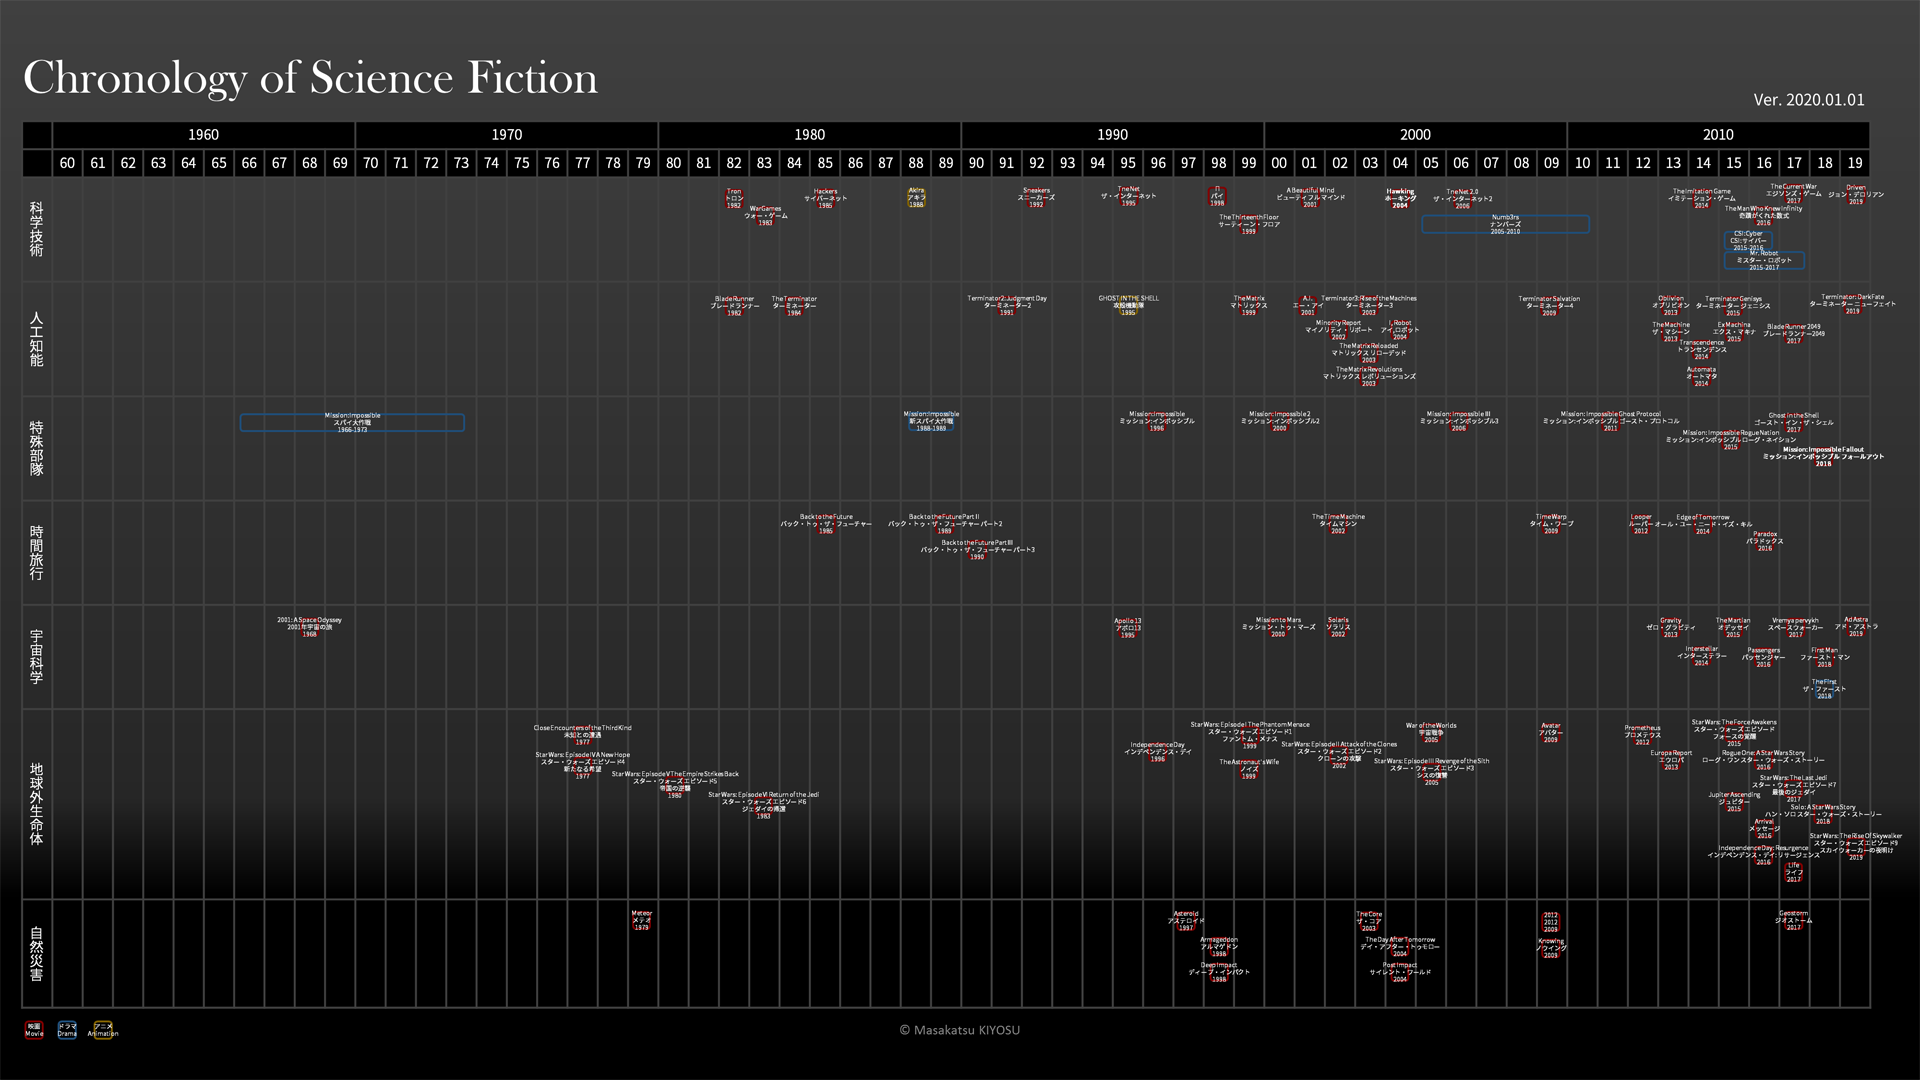 Chronology of Science Fiction